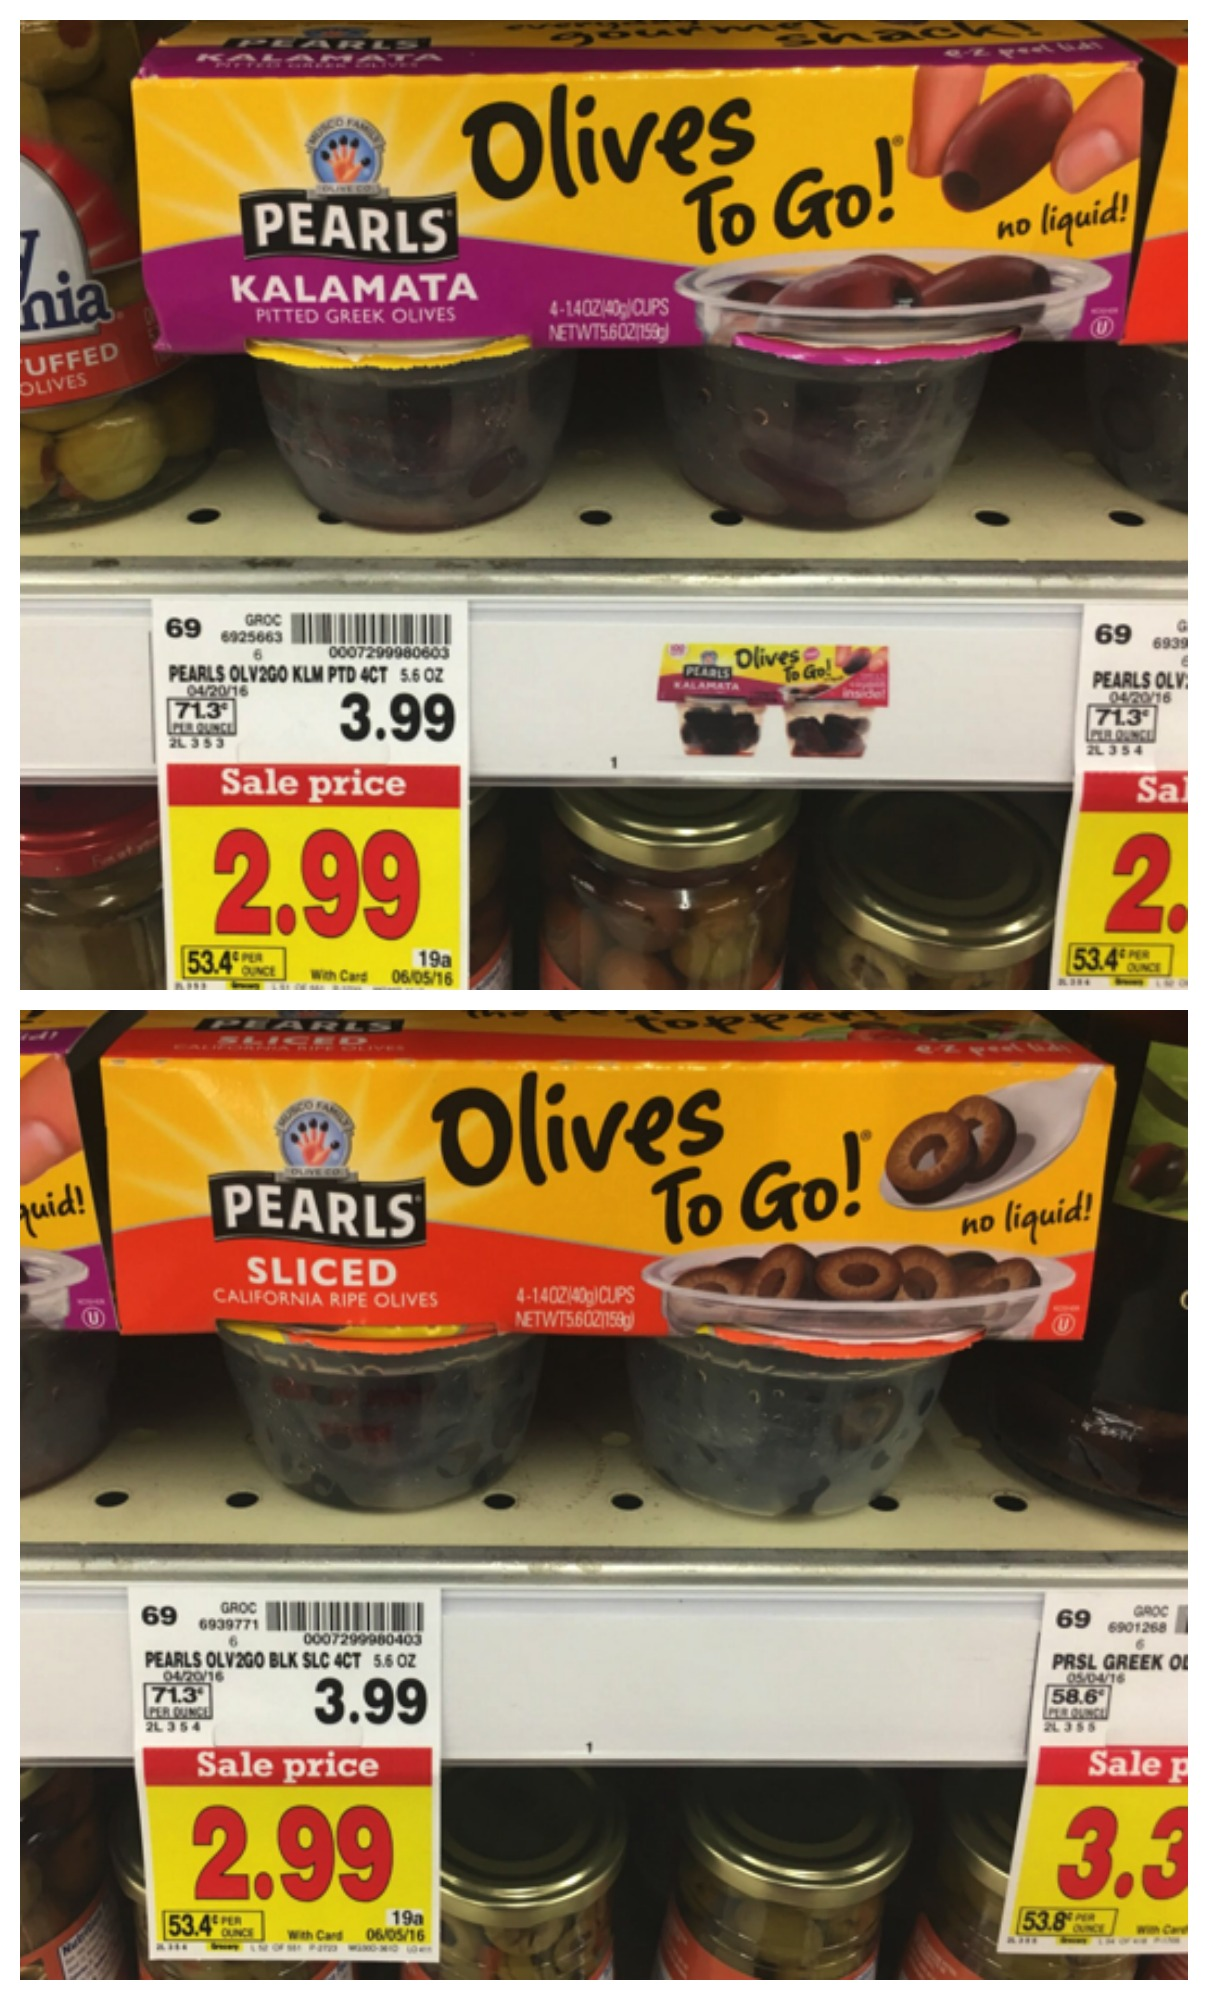 pearl olives to go!